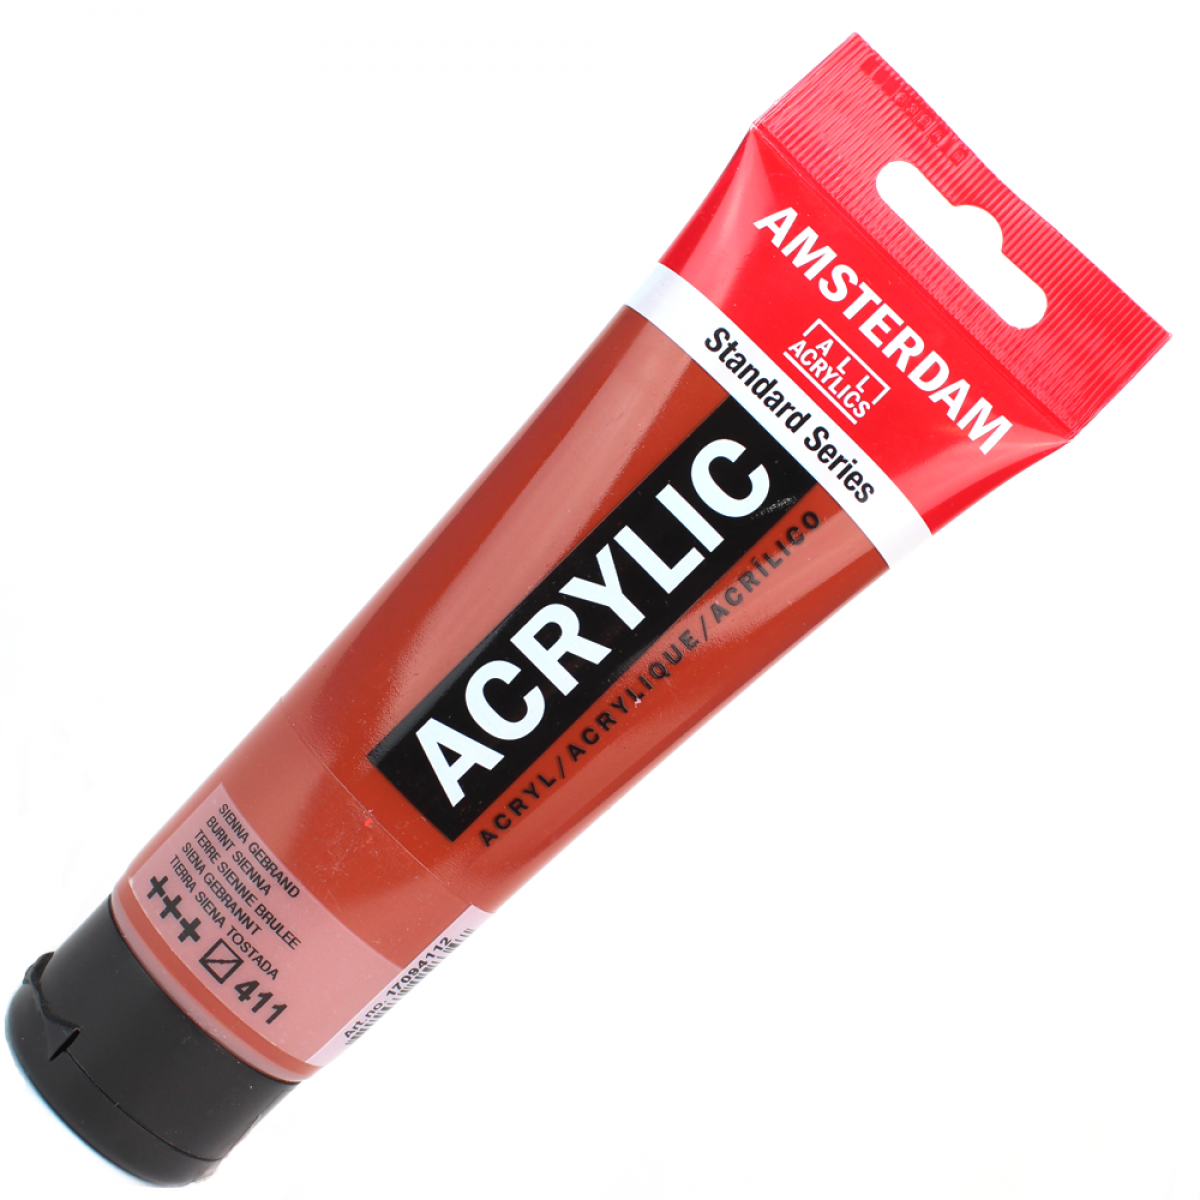 Tinta acr lica amsterdam 120ml 411 for Amsterdam products